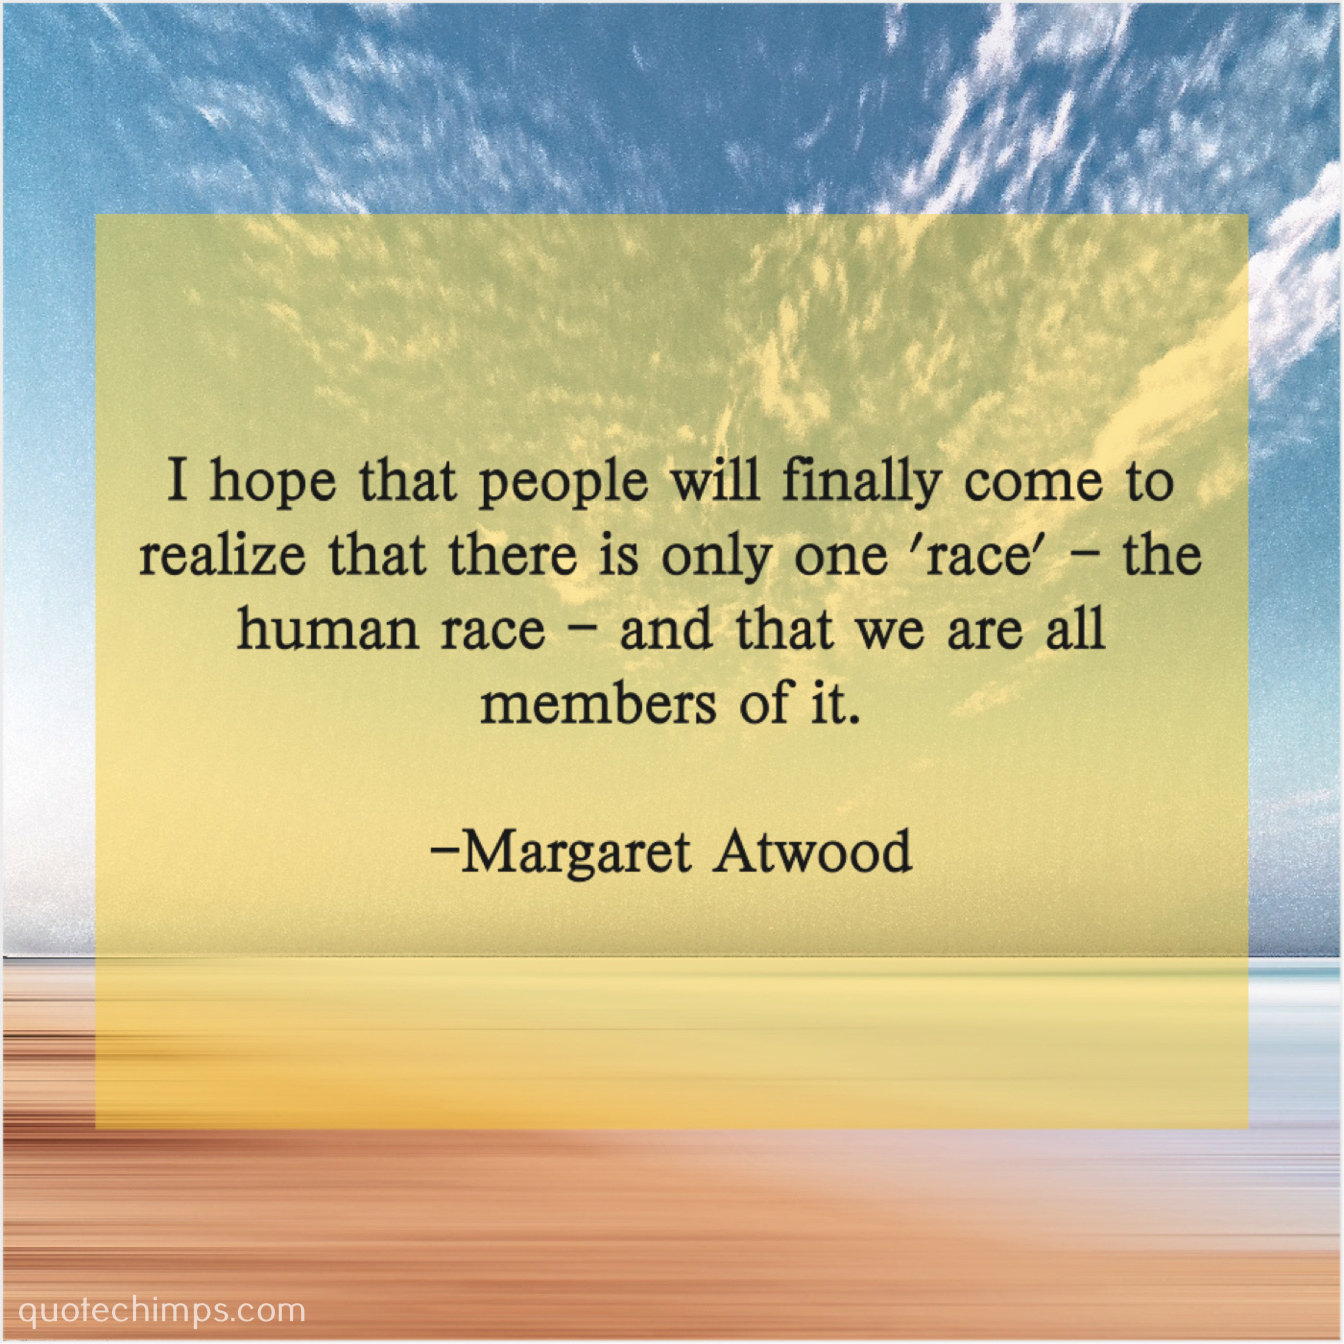 Margaret Atwood I Hope That People Will